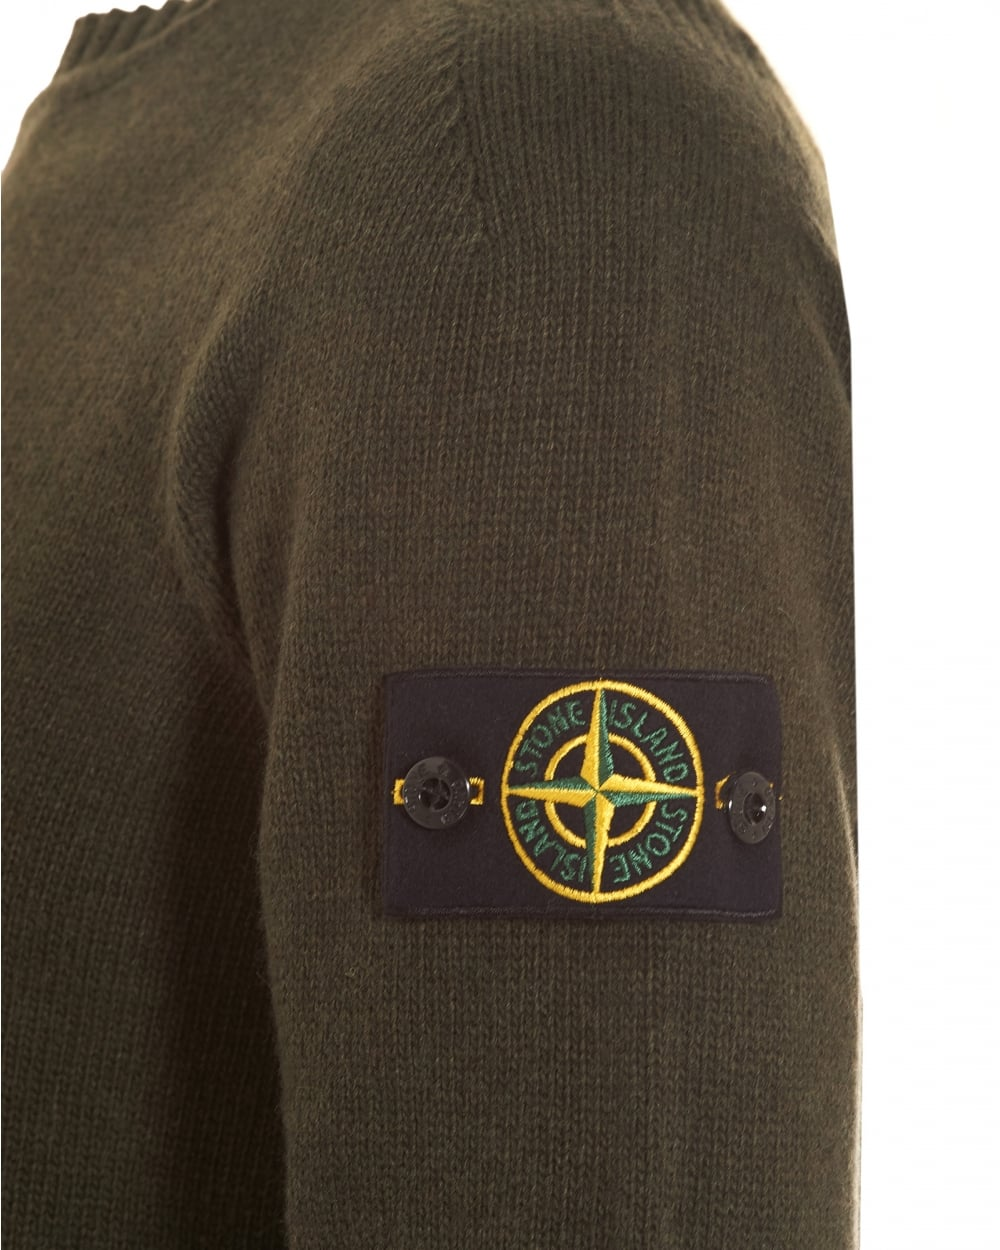 Stone Island Mens Knitted Jumper Military Green Badge Jumper